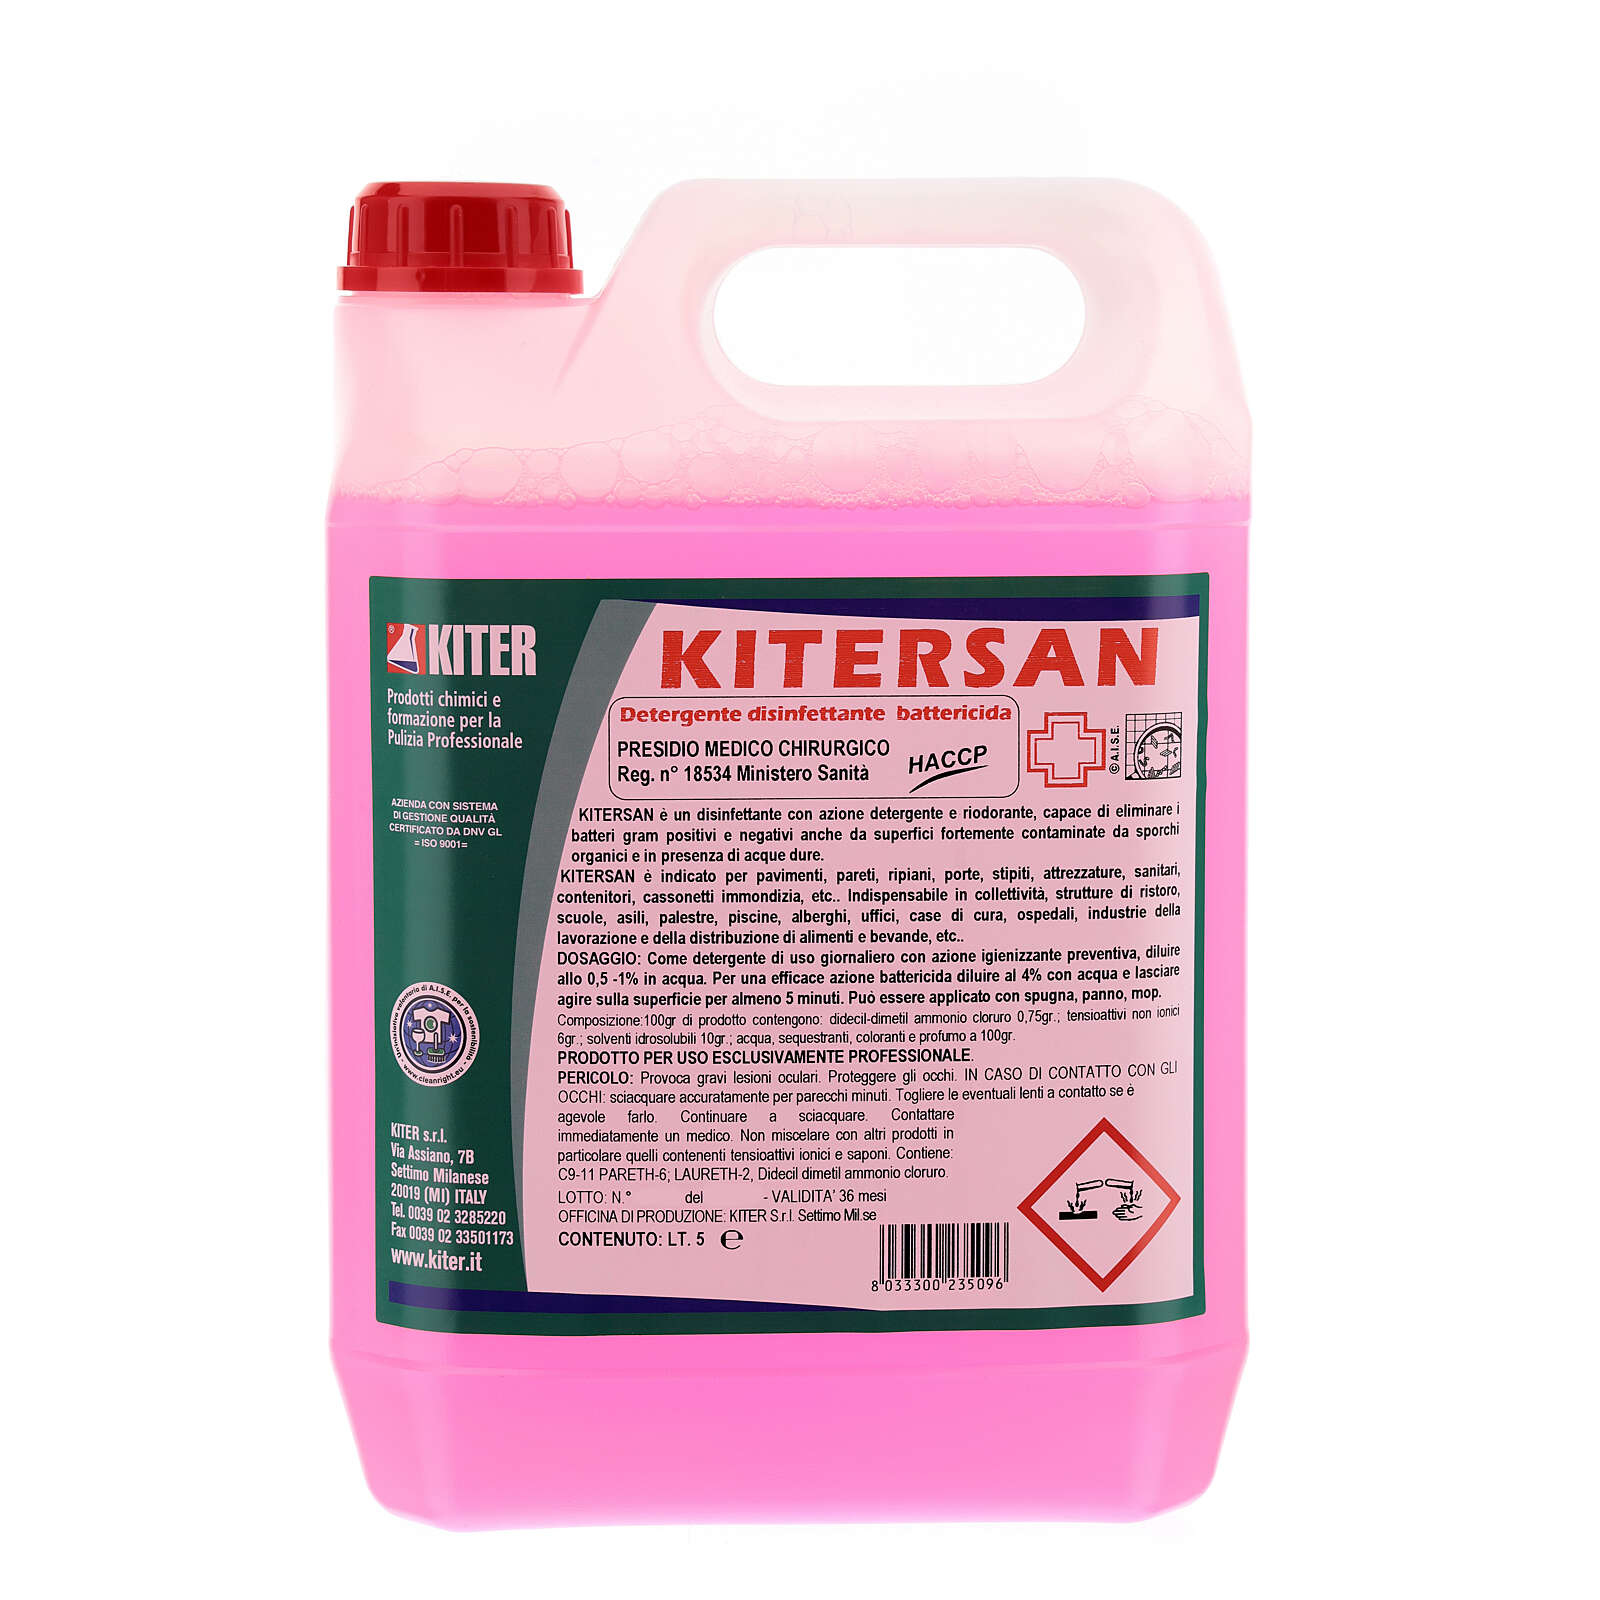 Kitersan disinfectant bactericide cleaner, 5 Liters  3